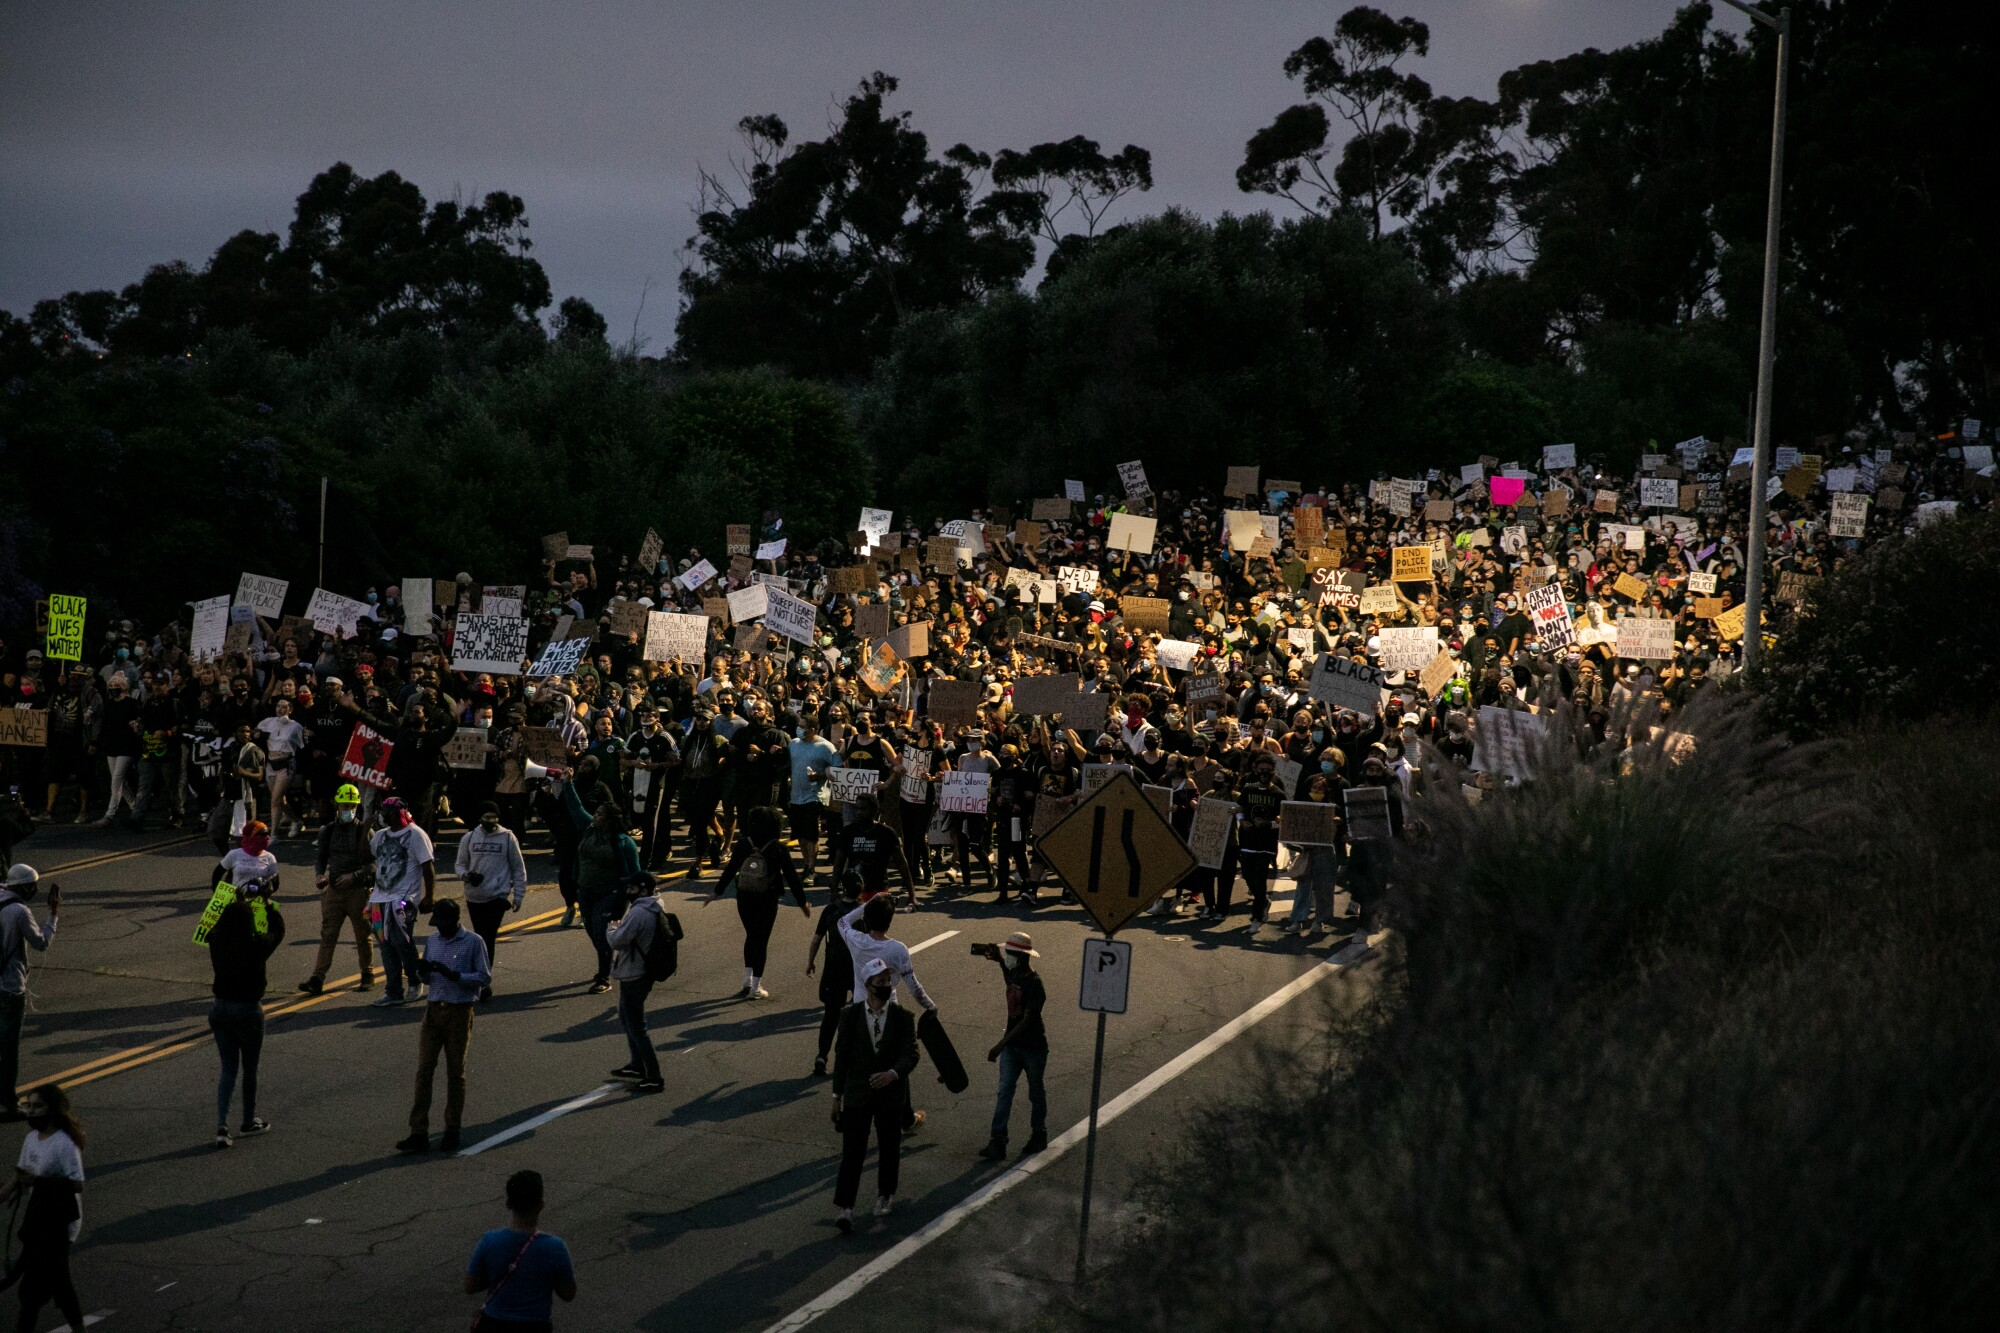 Thousands of protestors demanding racial justice in the U.S march down Pershing Drive toward downtown San Diego on June 4.